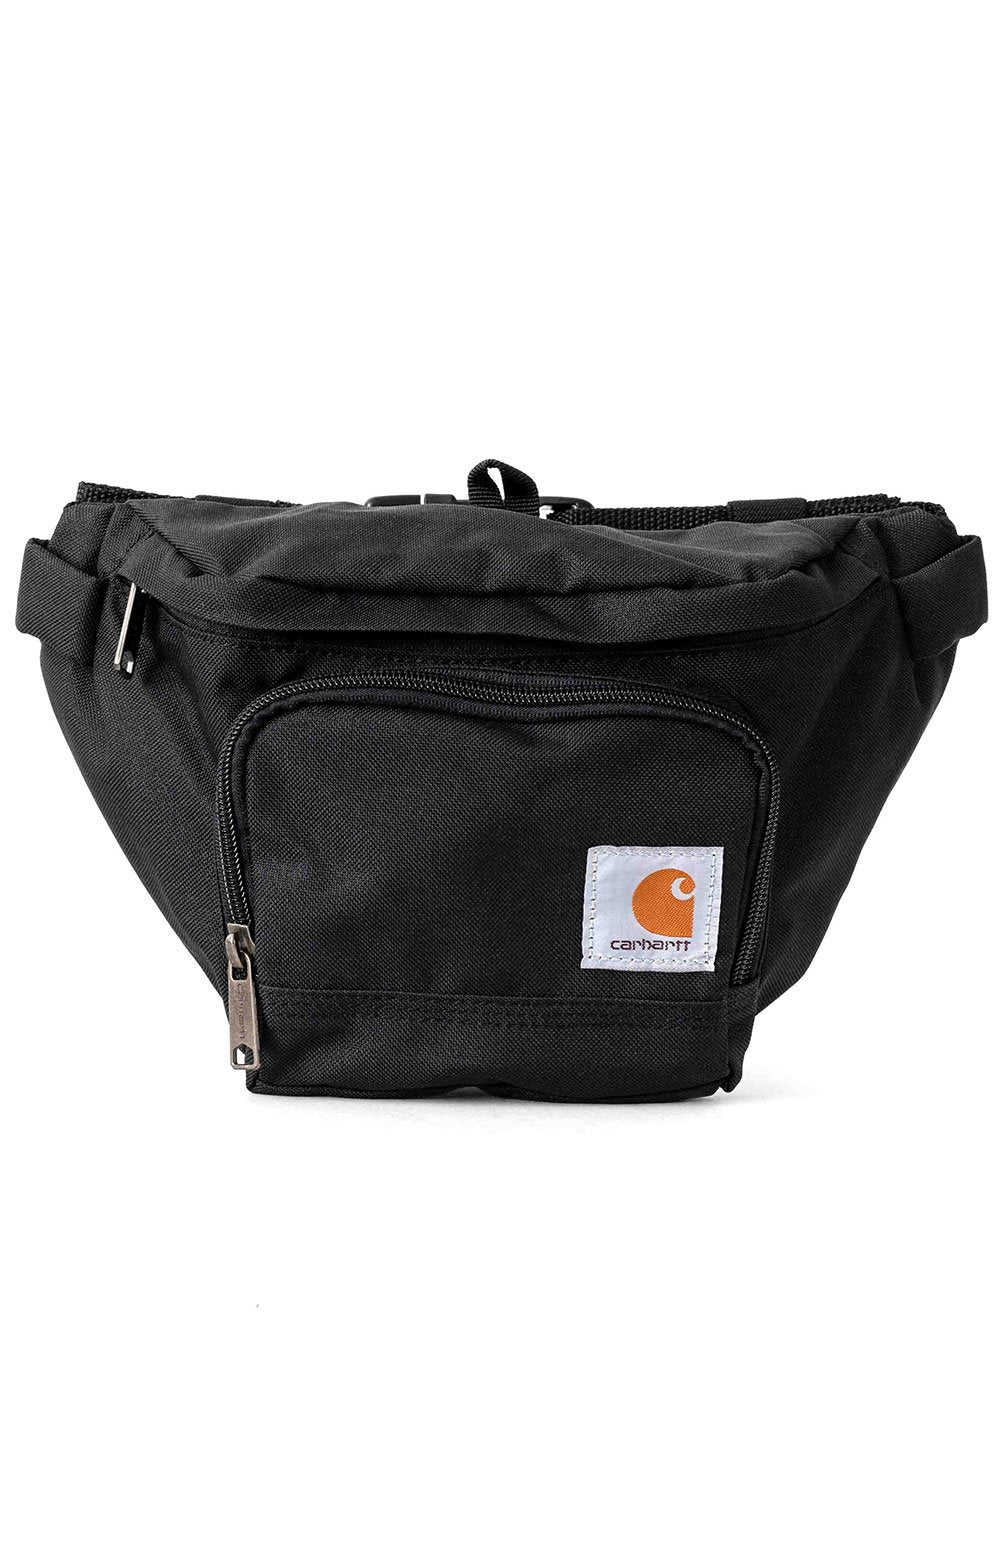 Carhartt Waist Pack (Black)